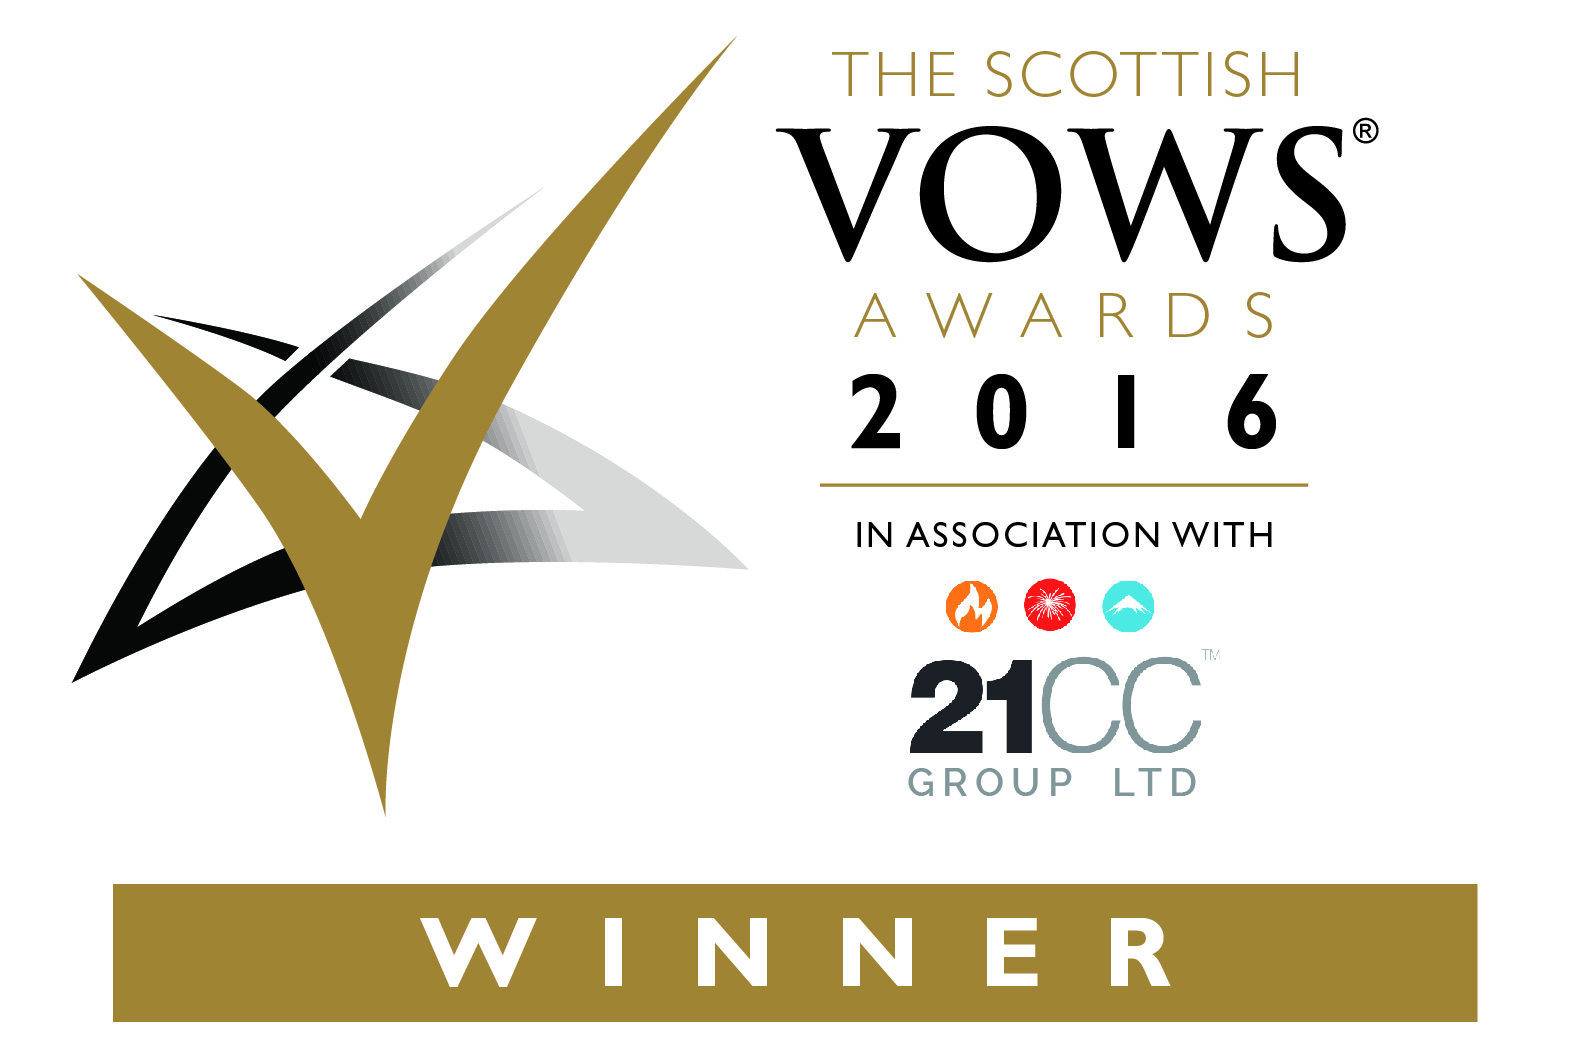 vows2016-generic-winners-logo-horizontal-white.jpg